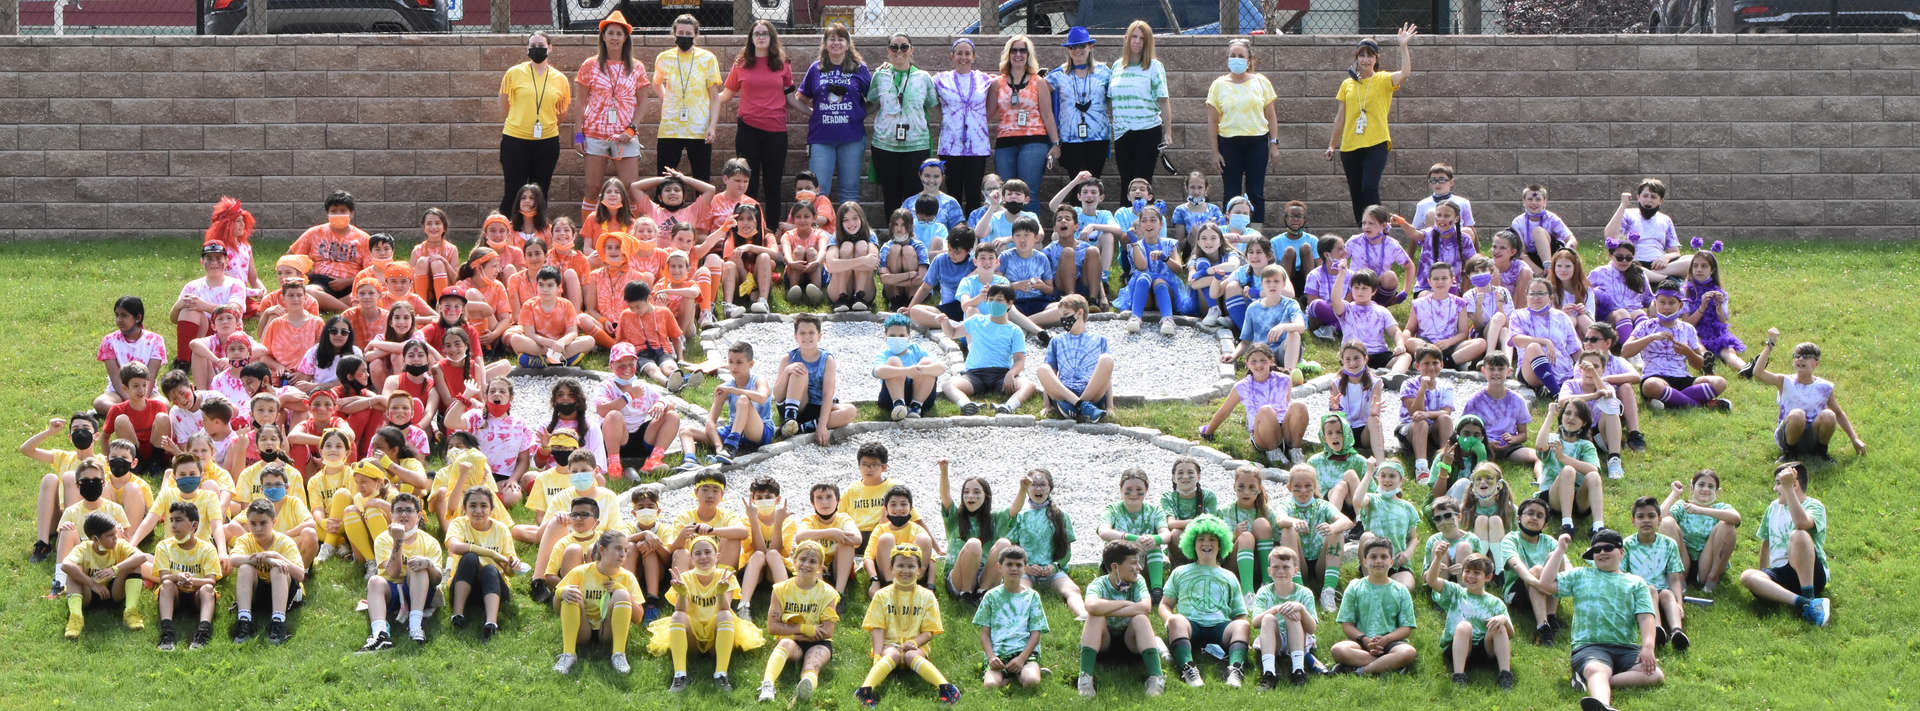 Entire 5th grade wearing colorful shirts sit on grass in front of school.